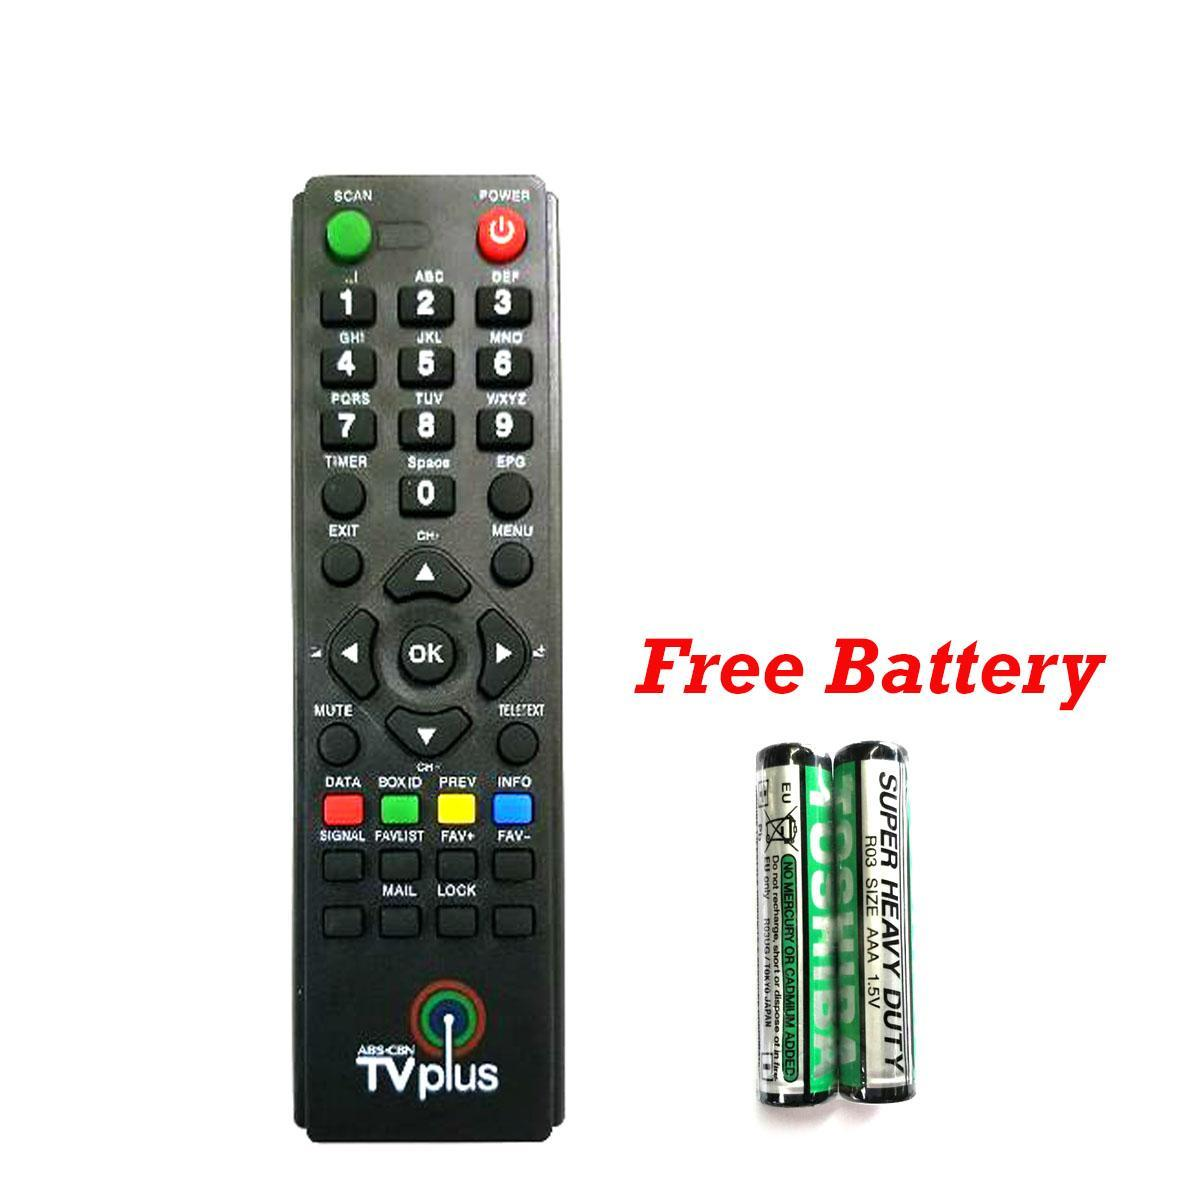 Abs Cbn Tv Plus Remote With Free Battery By 101shop.